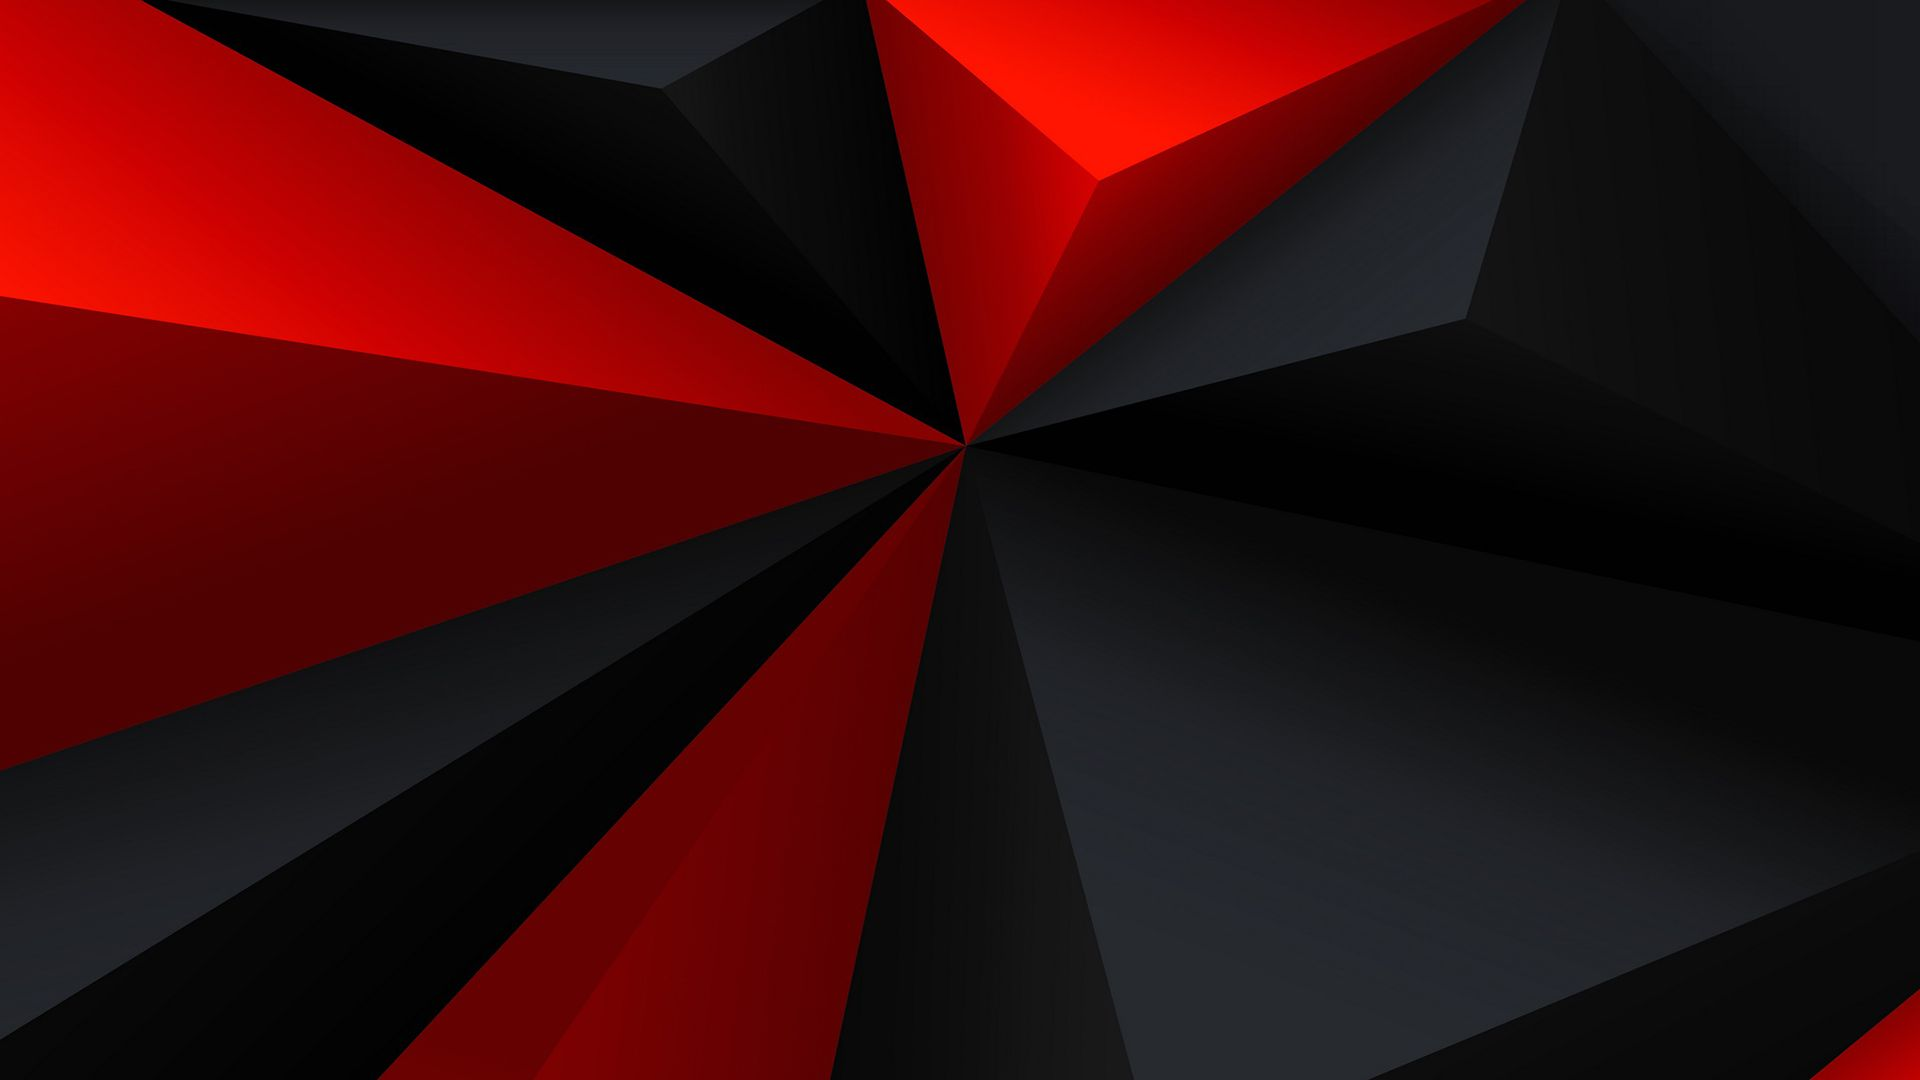 Red Black Wallpaper